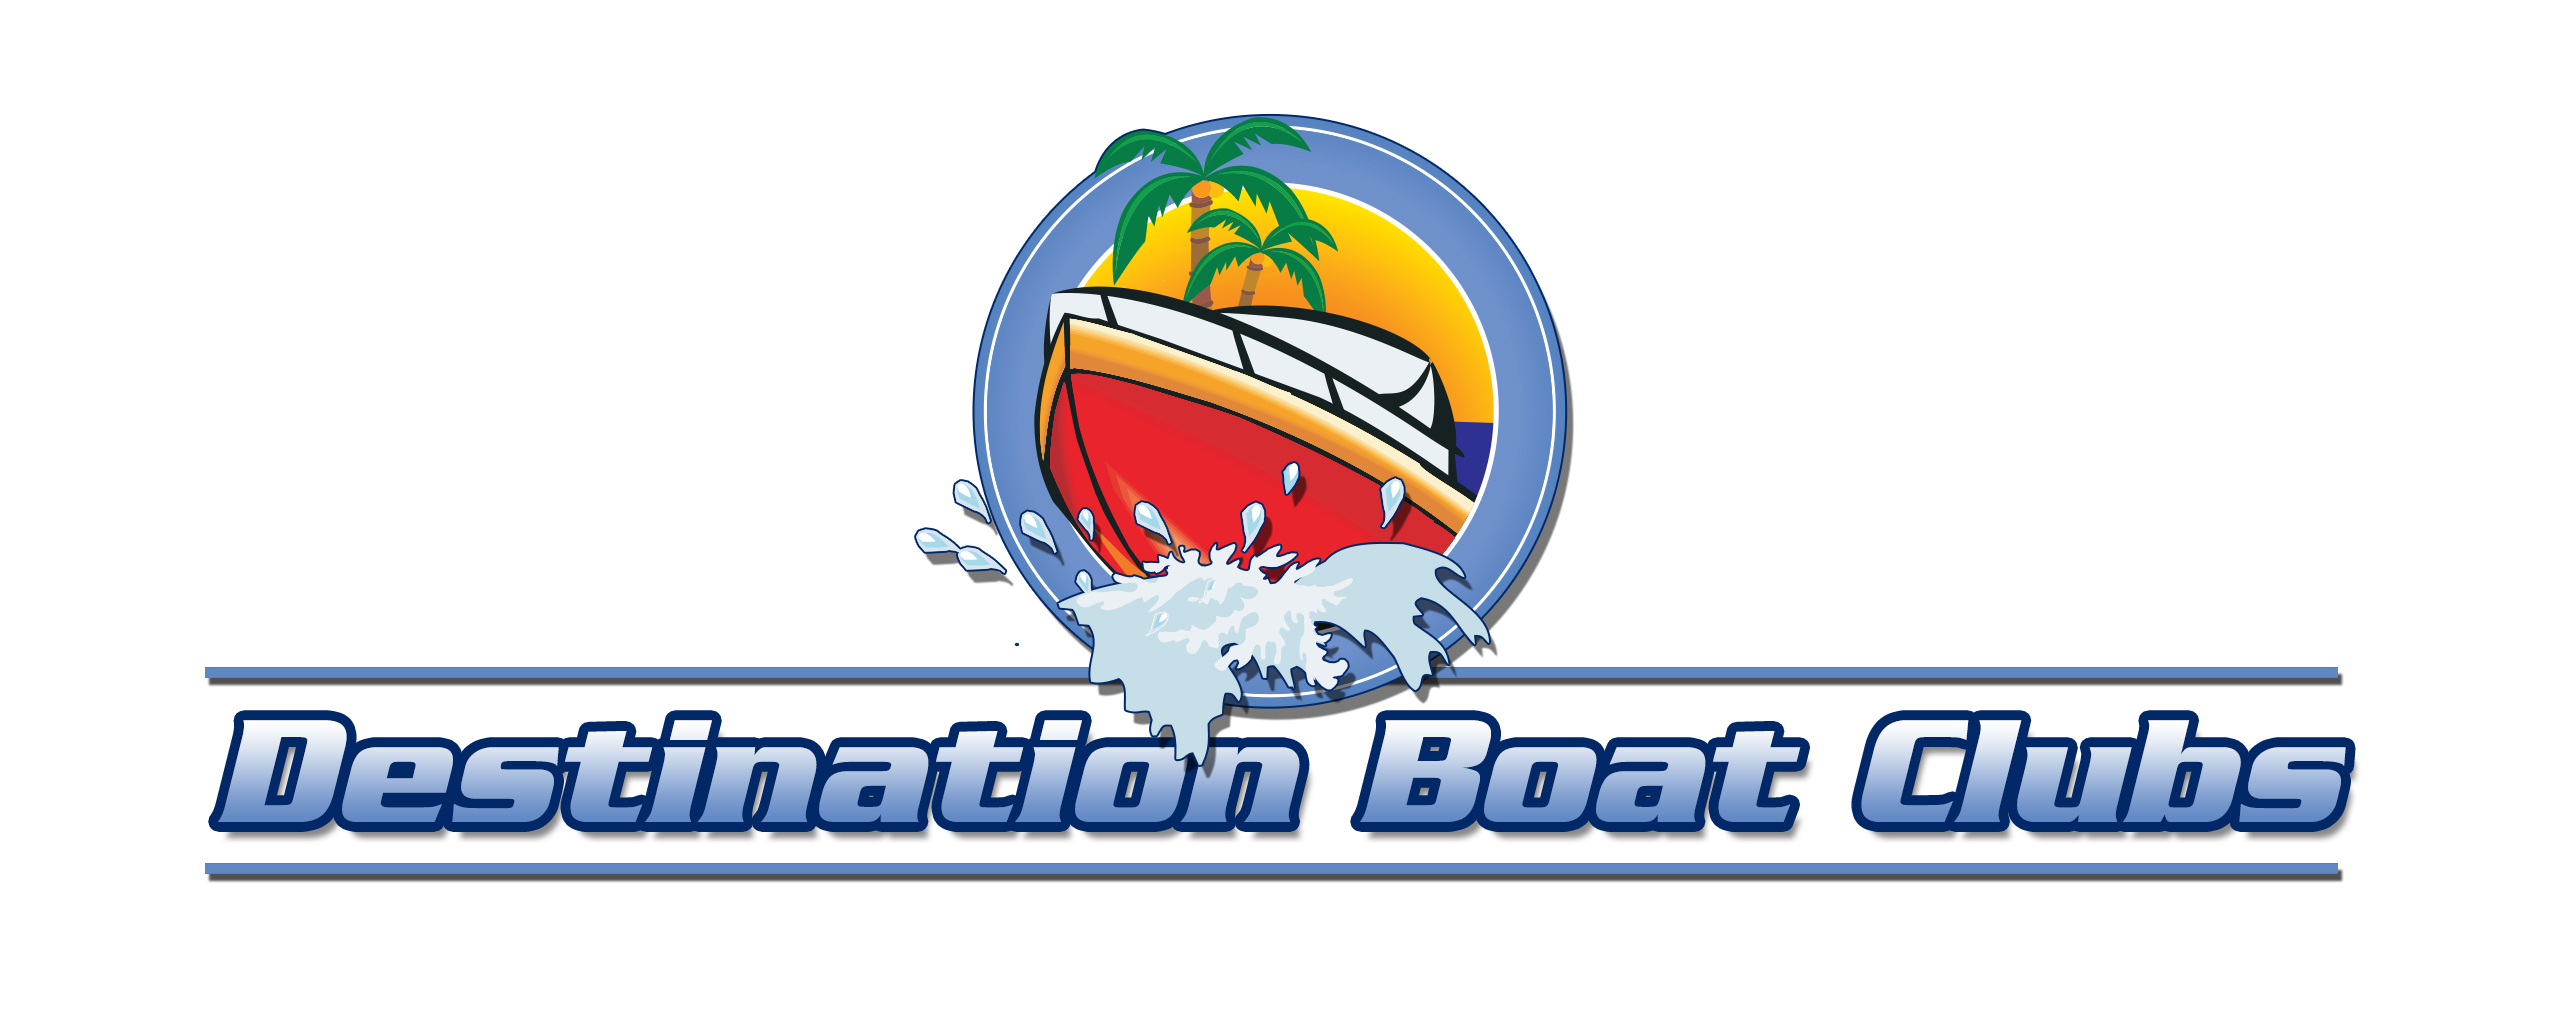 DESTINATION BOAT CLUBS